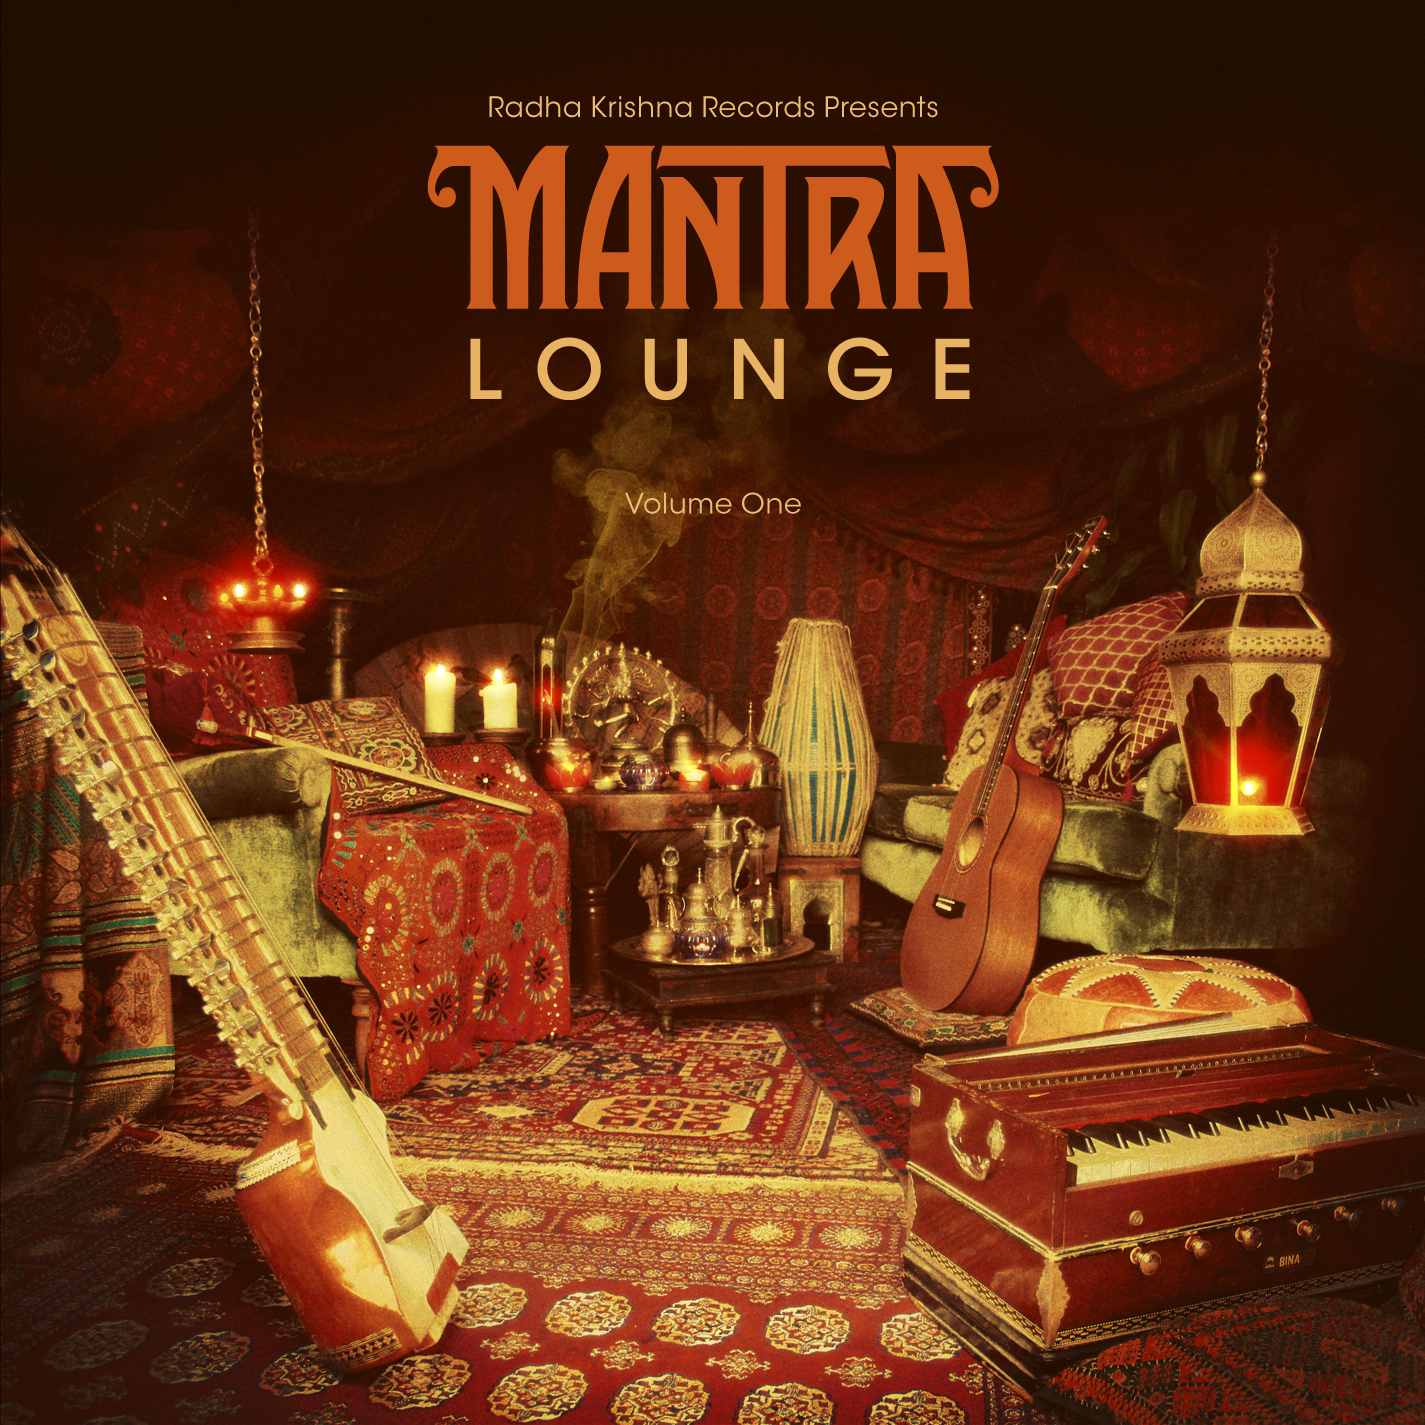 Mantra-Lounge-Cover-iTunes-1425px.png